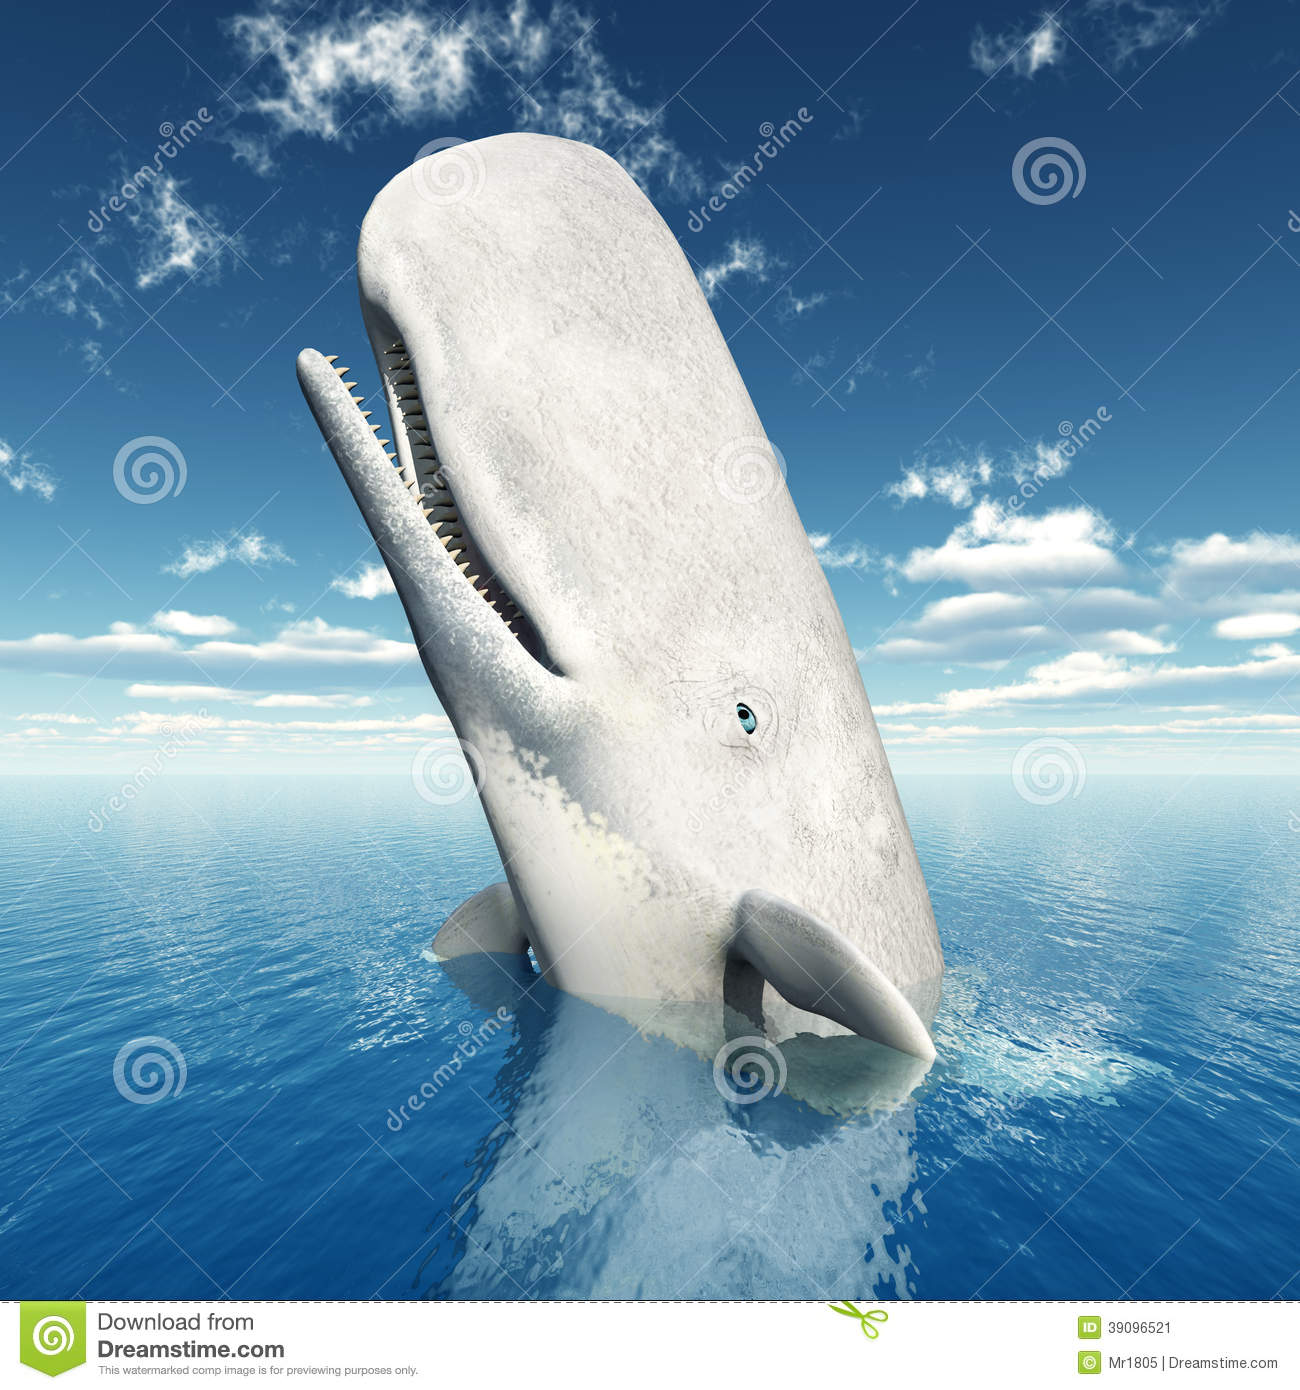 Commit error. Sperm whale illustrations think, that